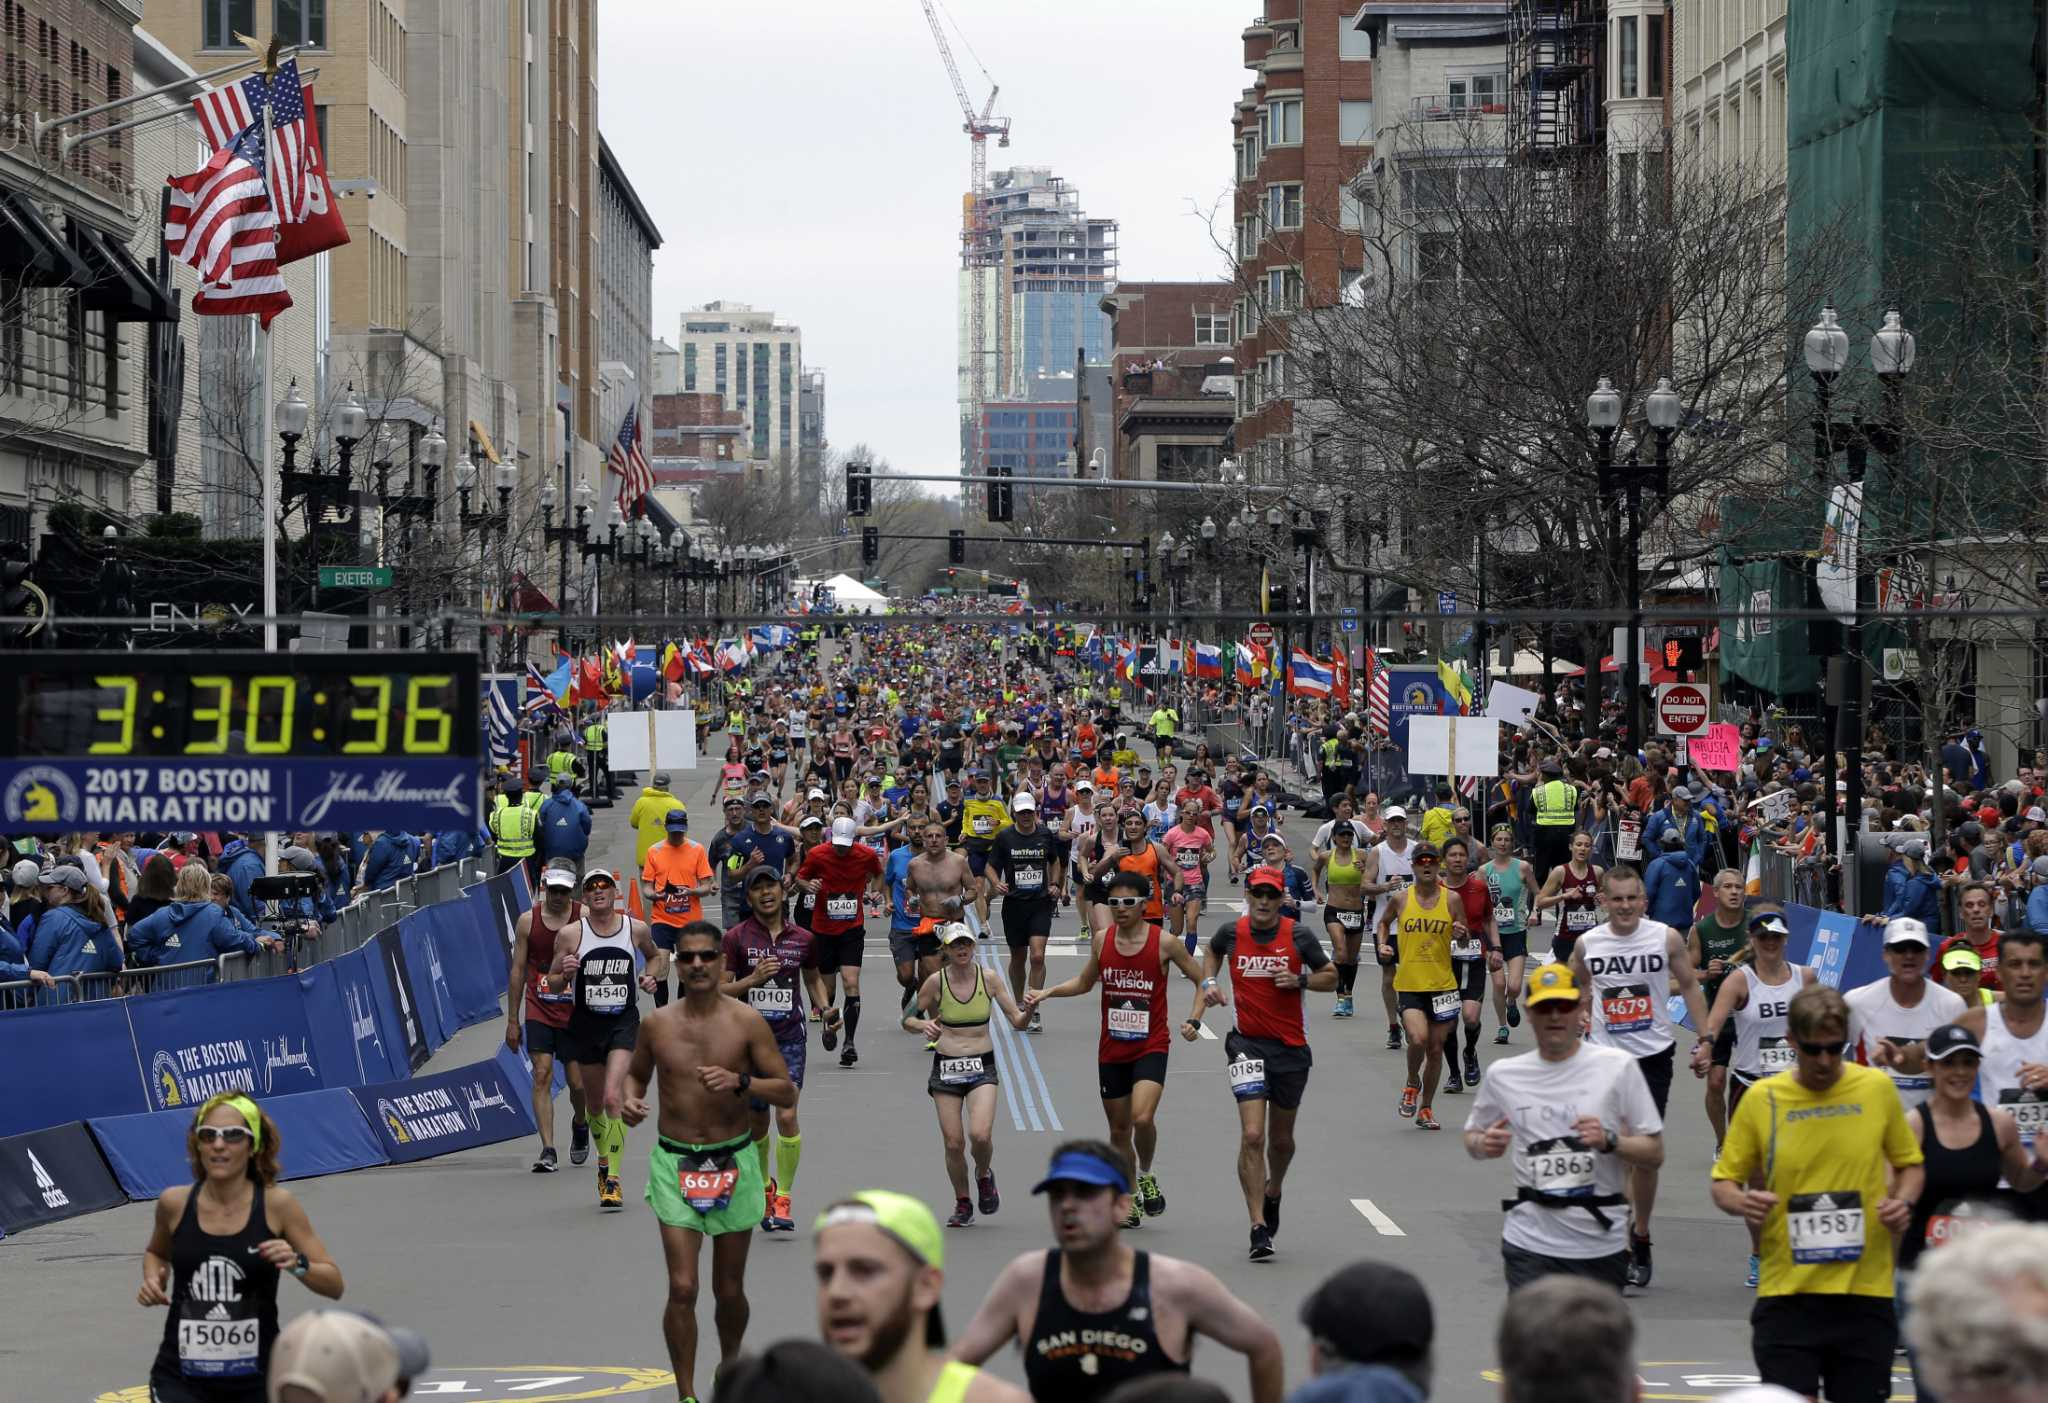 Boston marathon finisher photos Butt Shots Gone Bad: A Gallery of Deformed Booties - Atlanta Daily